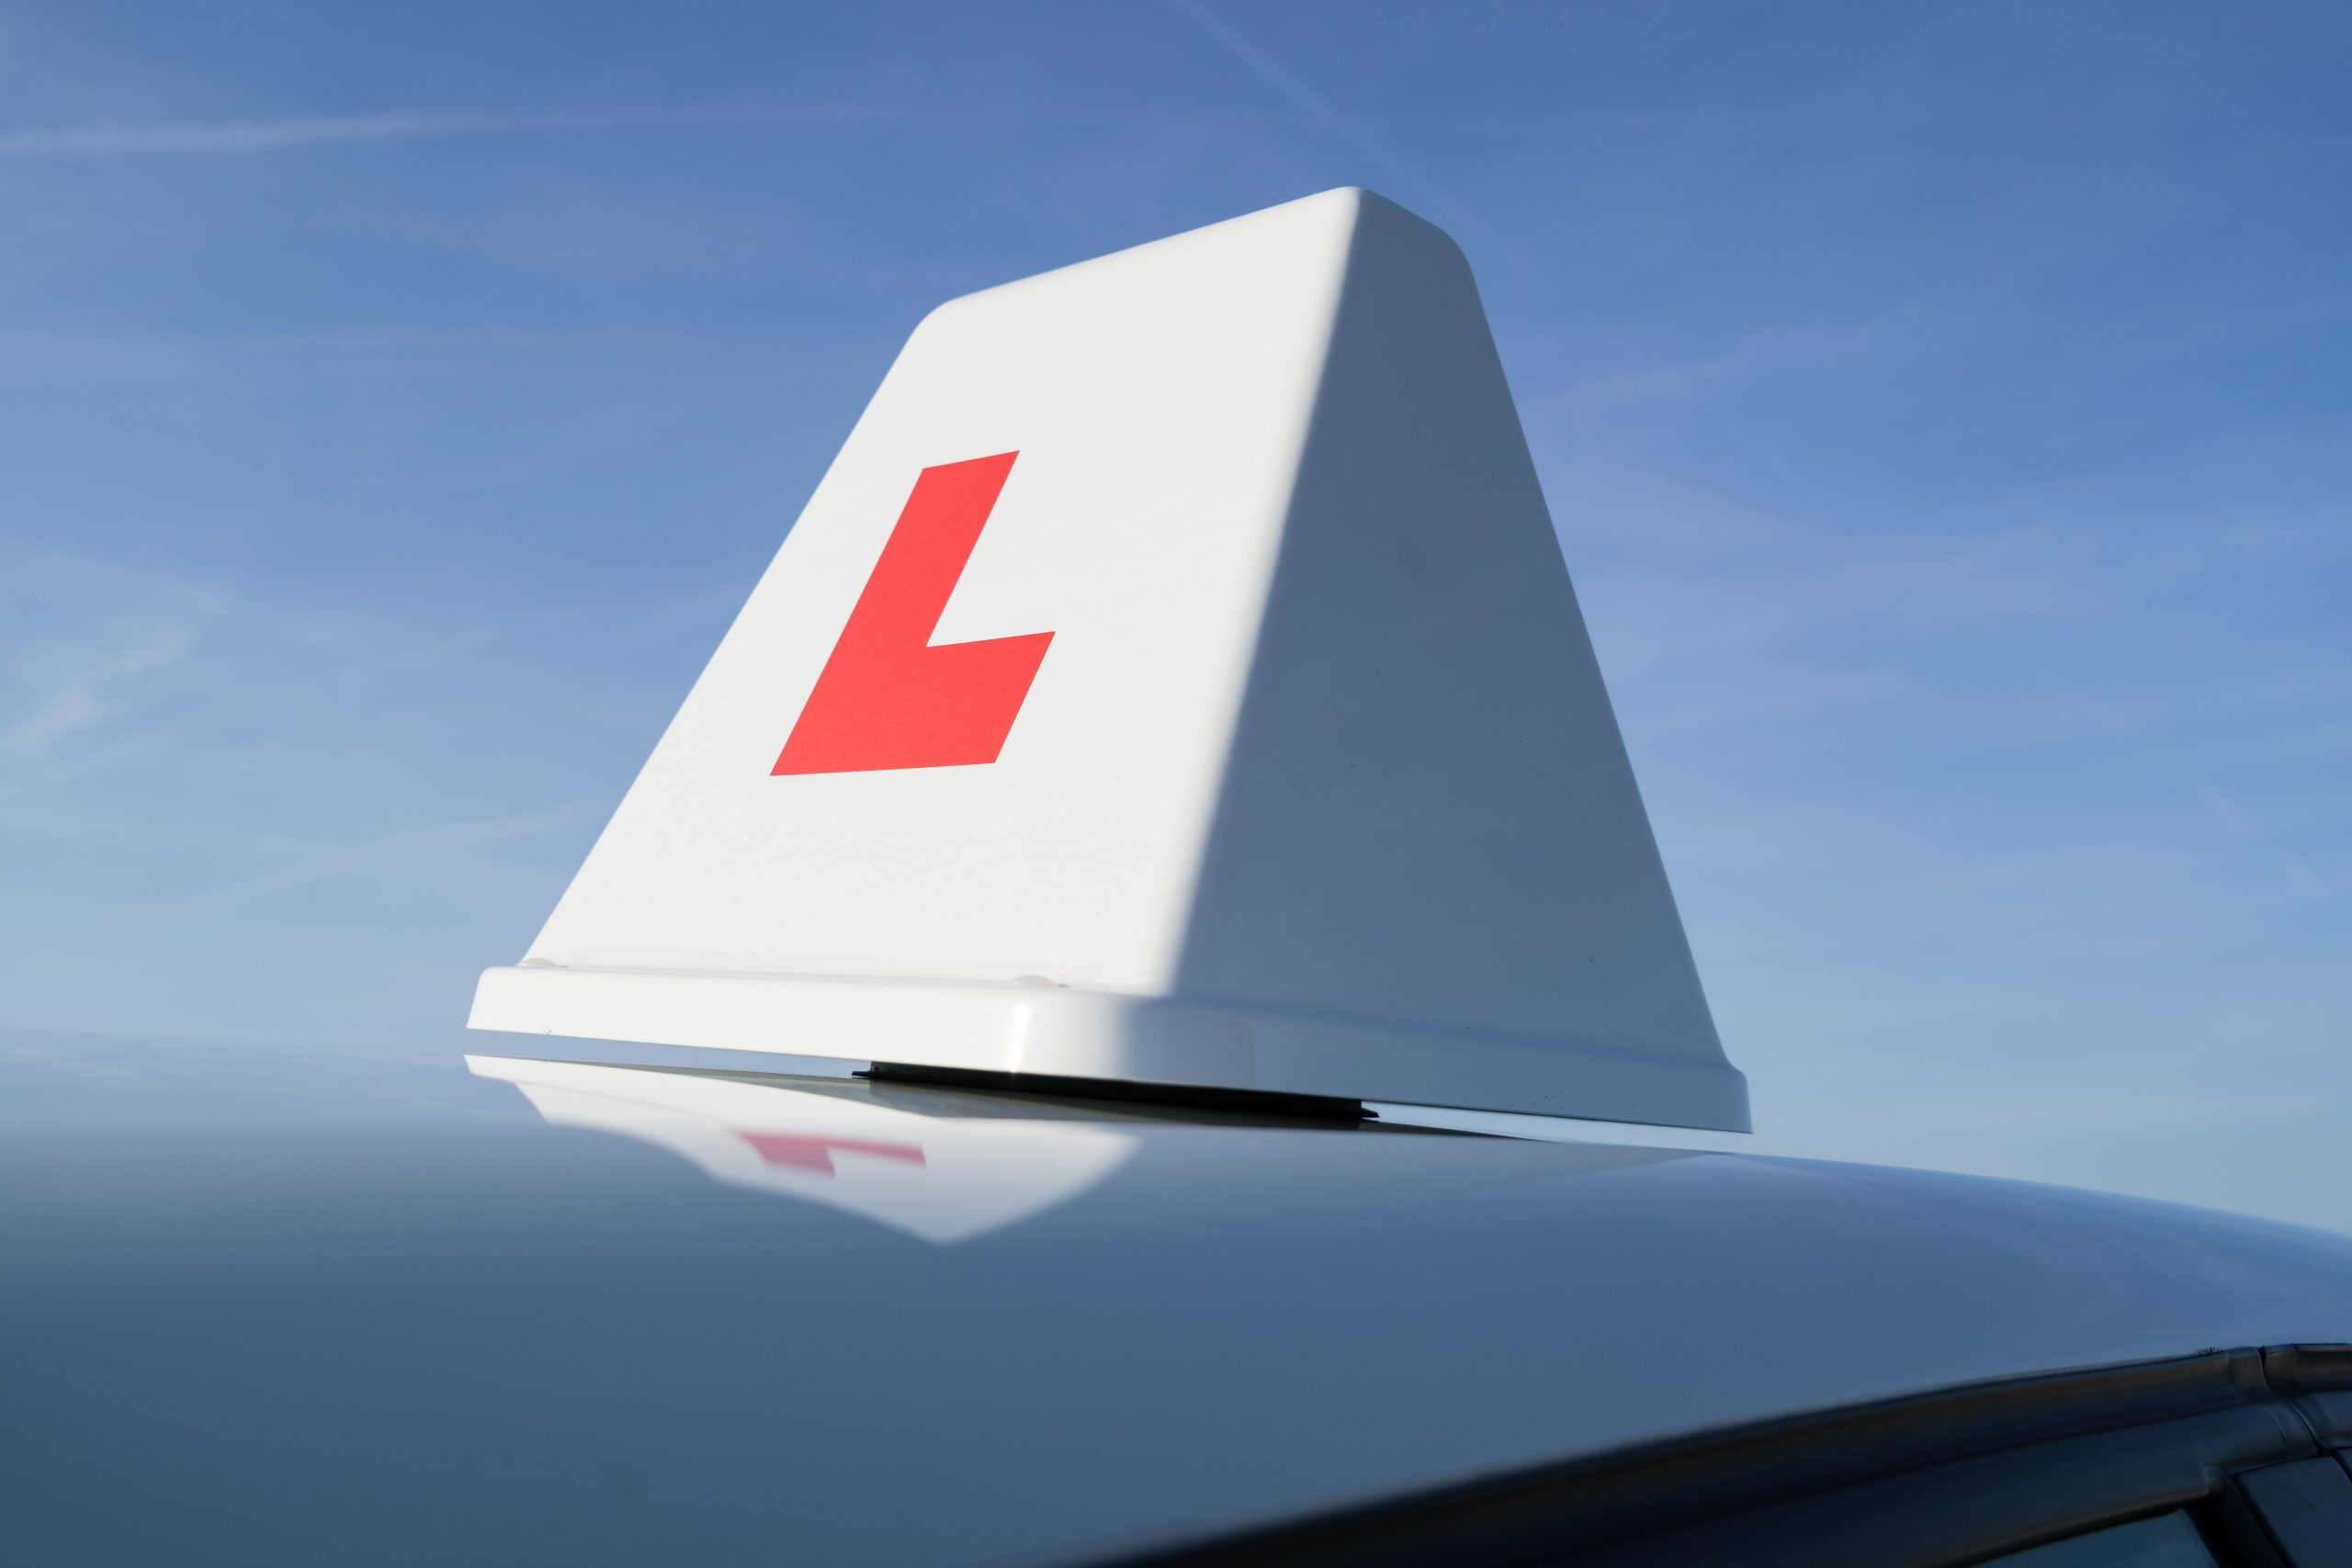 Learner driver sign on top of car